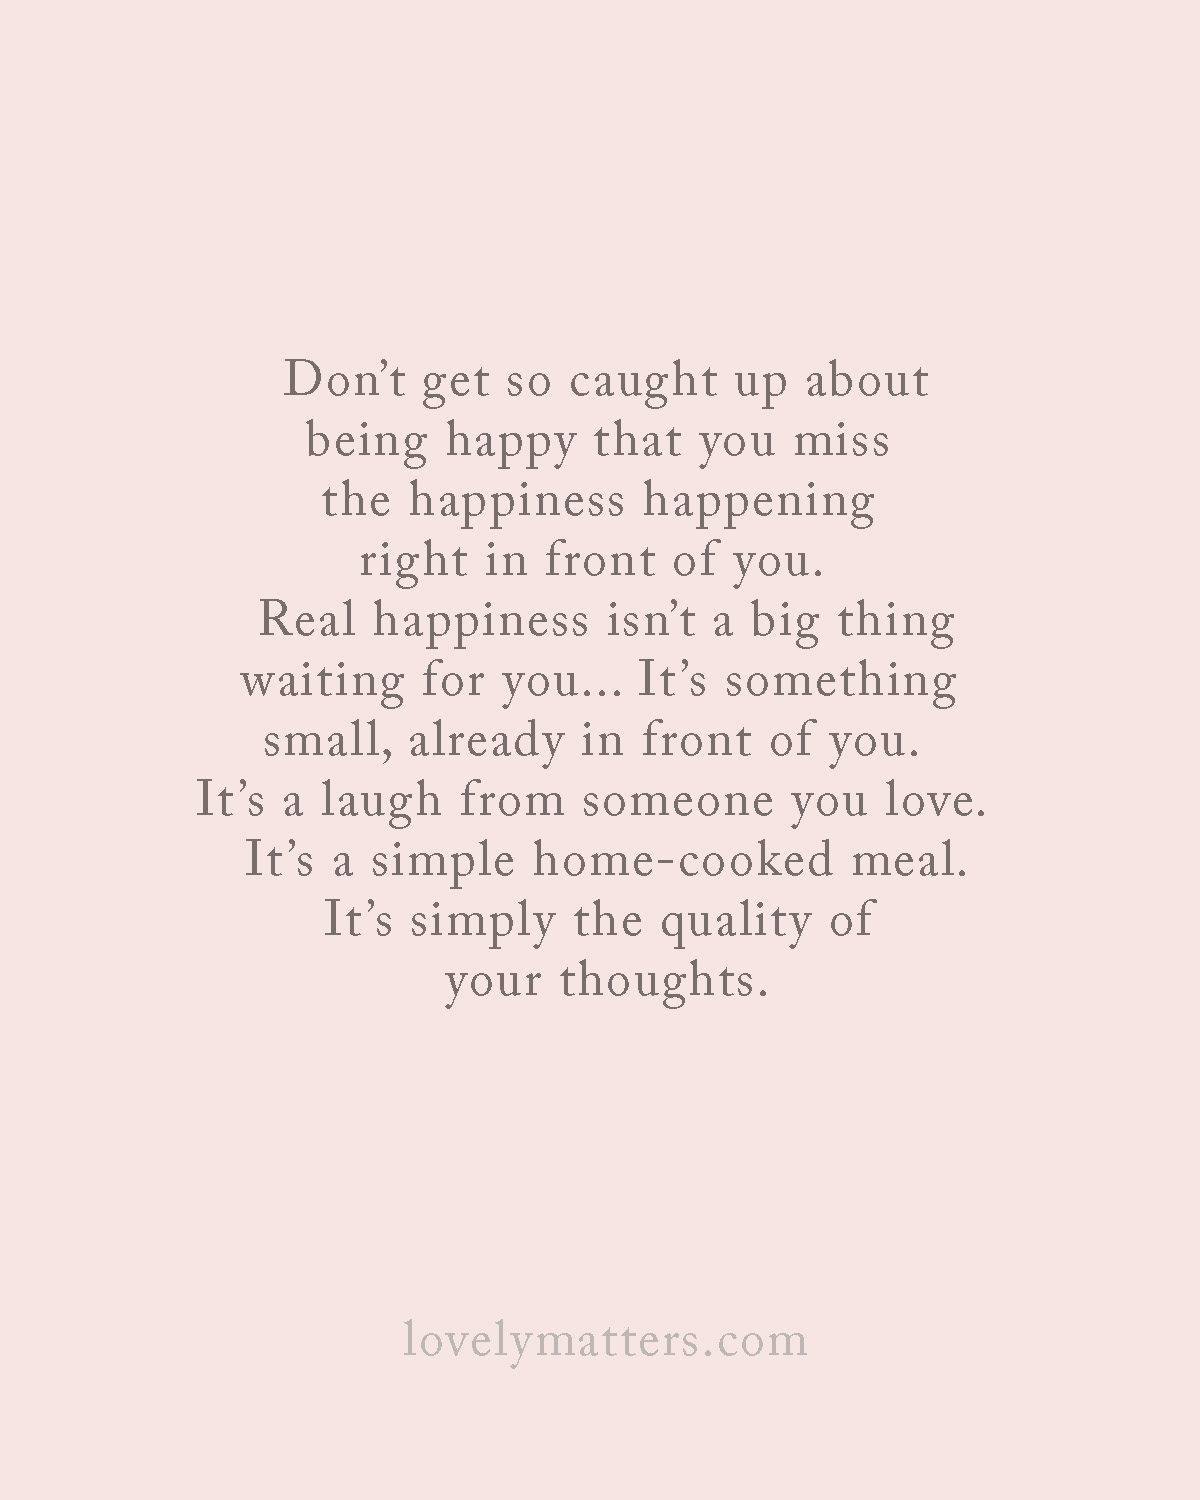 Beautiful happiness quote by Heather Walker - Lovely Matters Blog